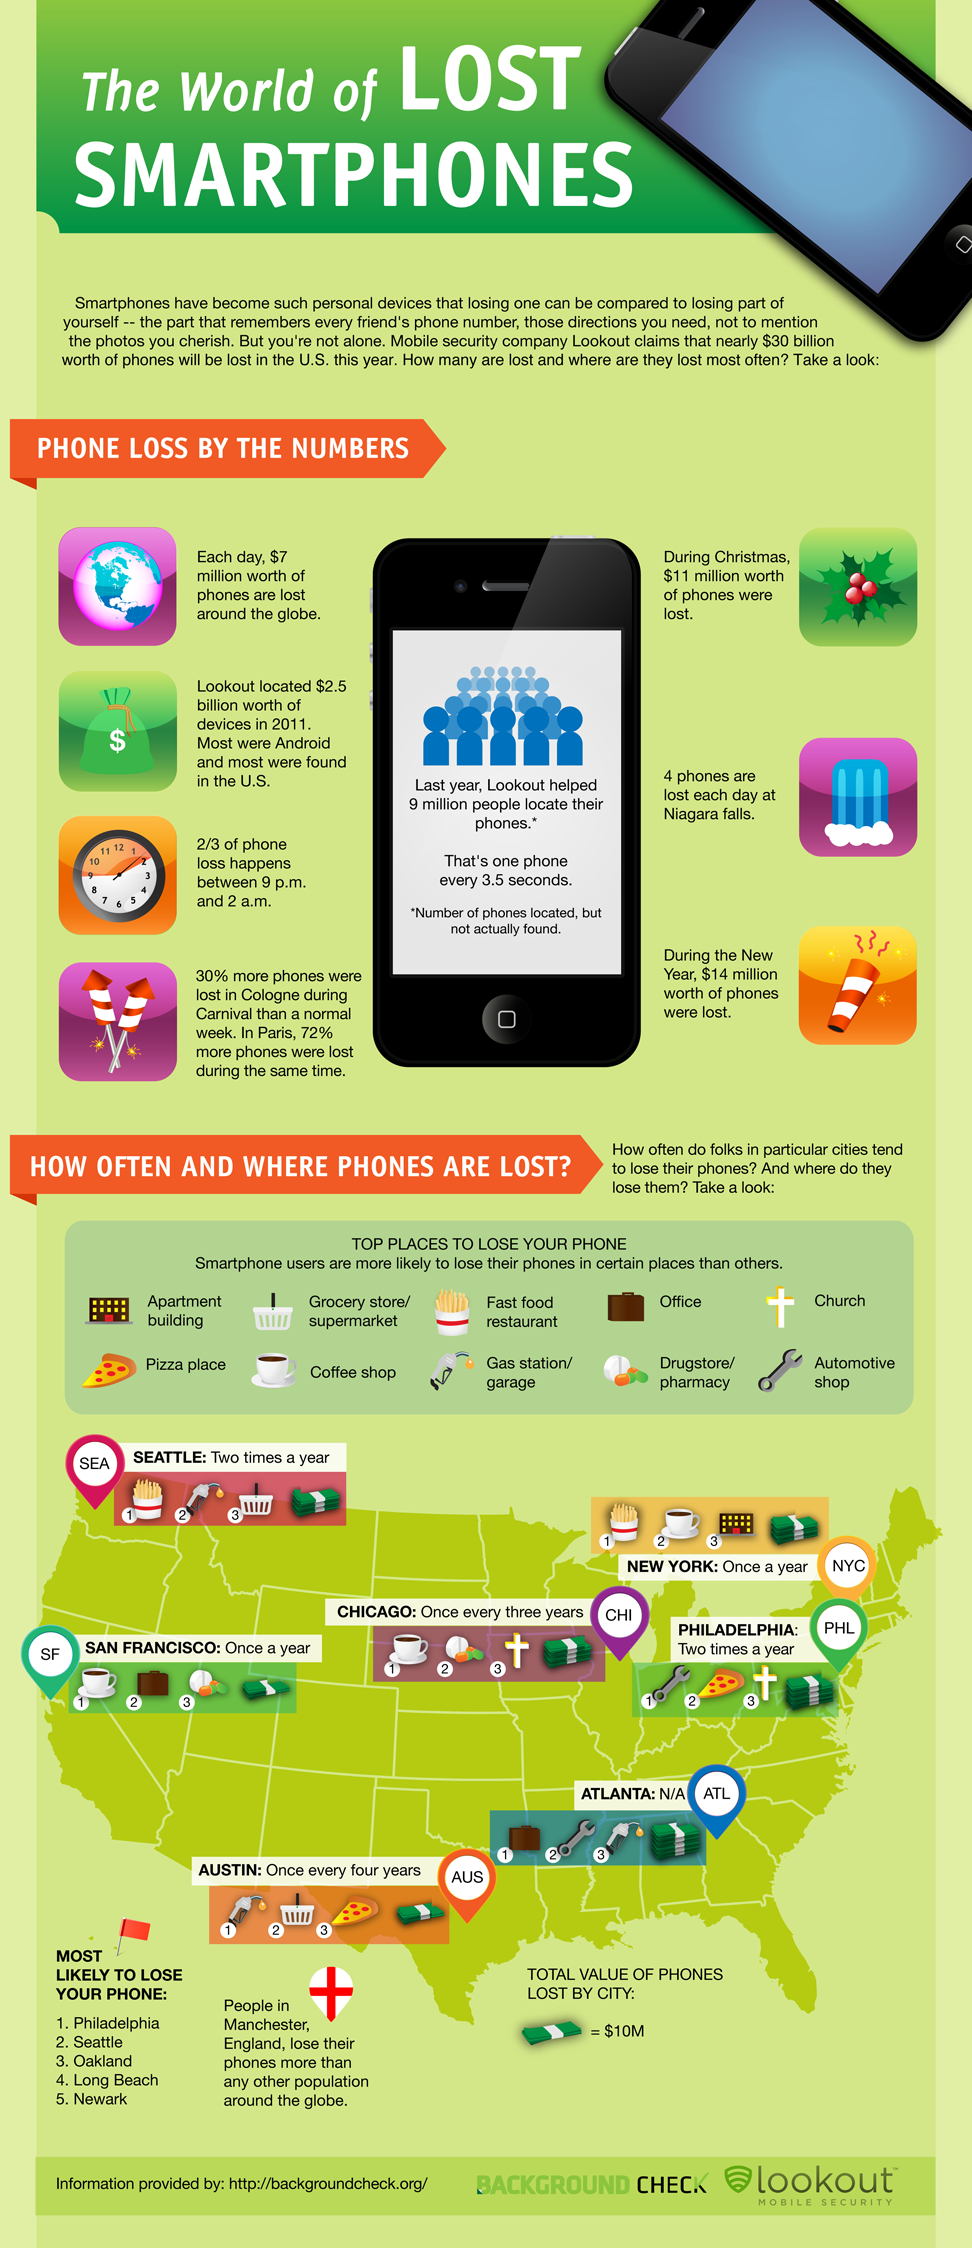 Where and When Do Most People Lose Their Phones